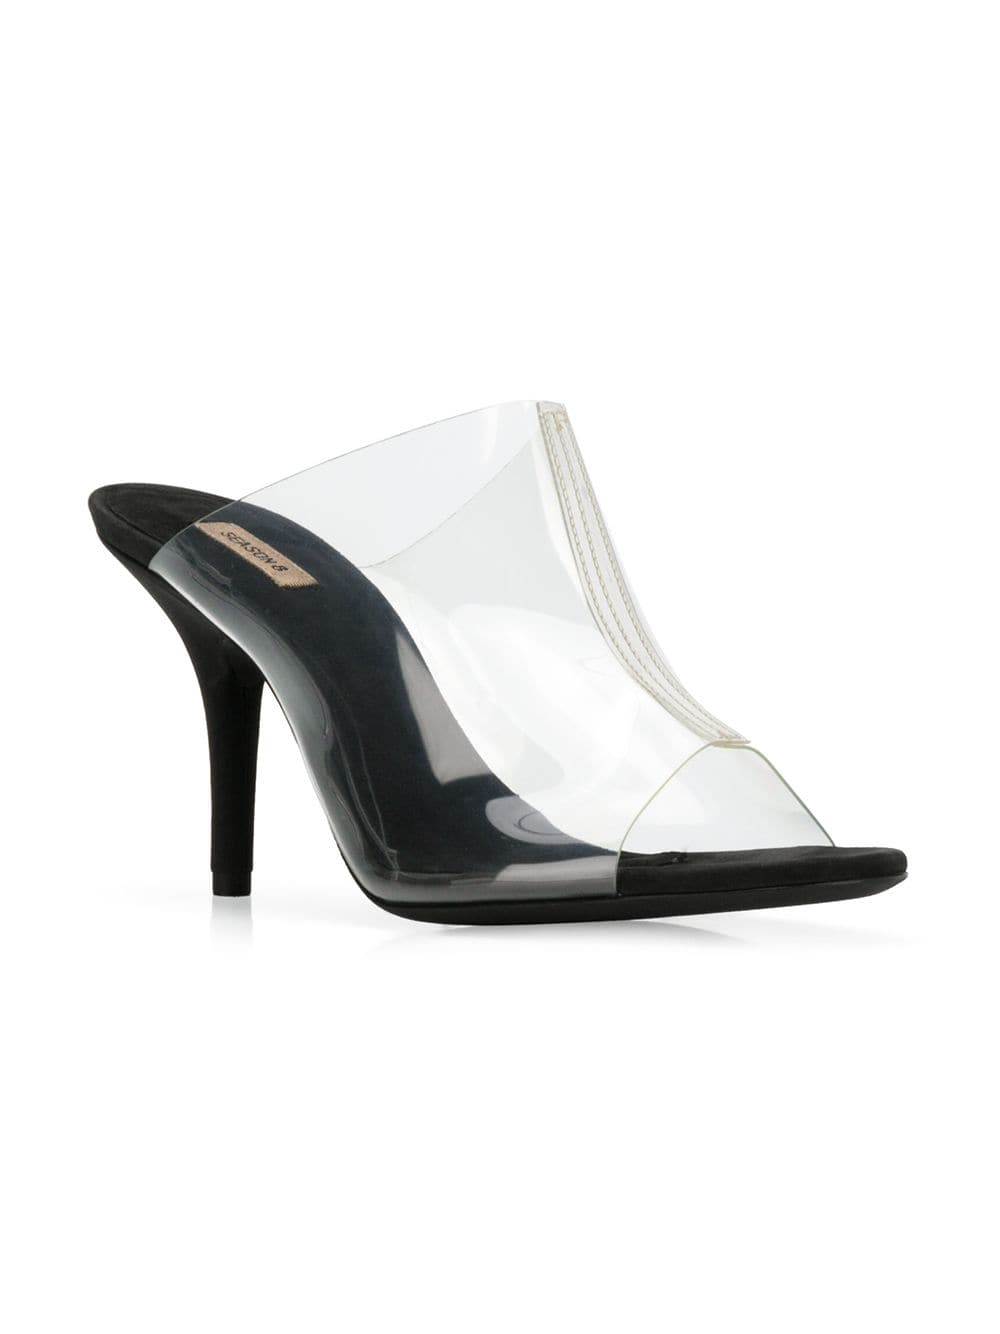 YEEZY Season 8 Clear Front Panel Mules | Yeezy Women